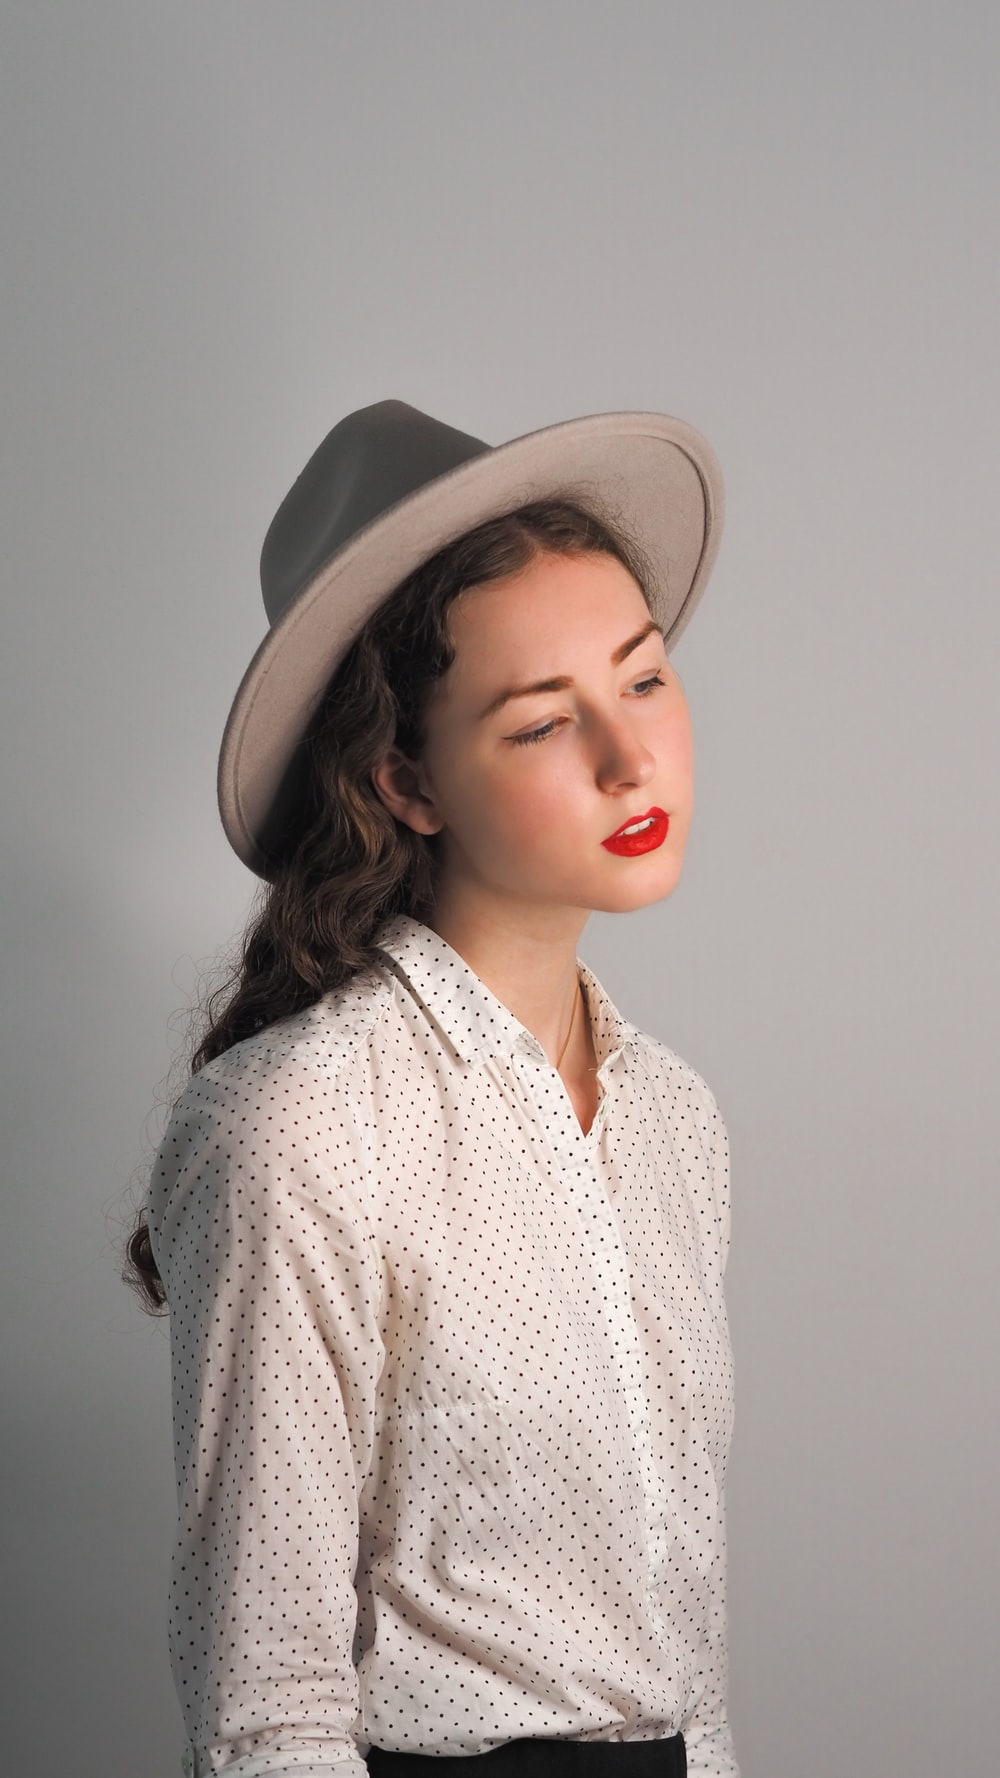 woman in white and black button up shirt wearing brown hat